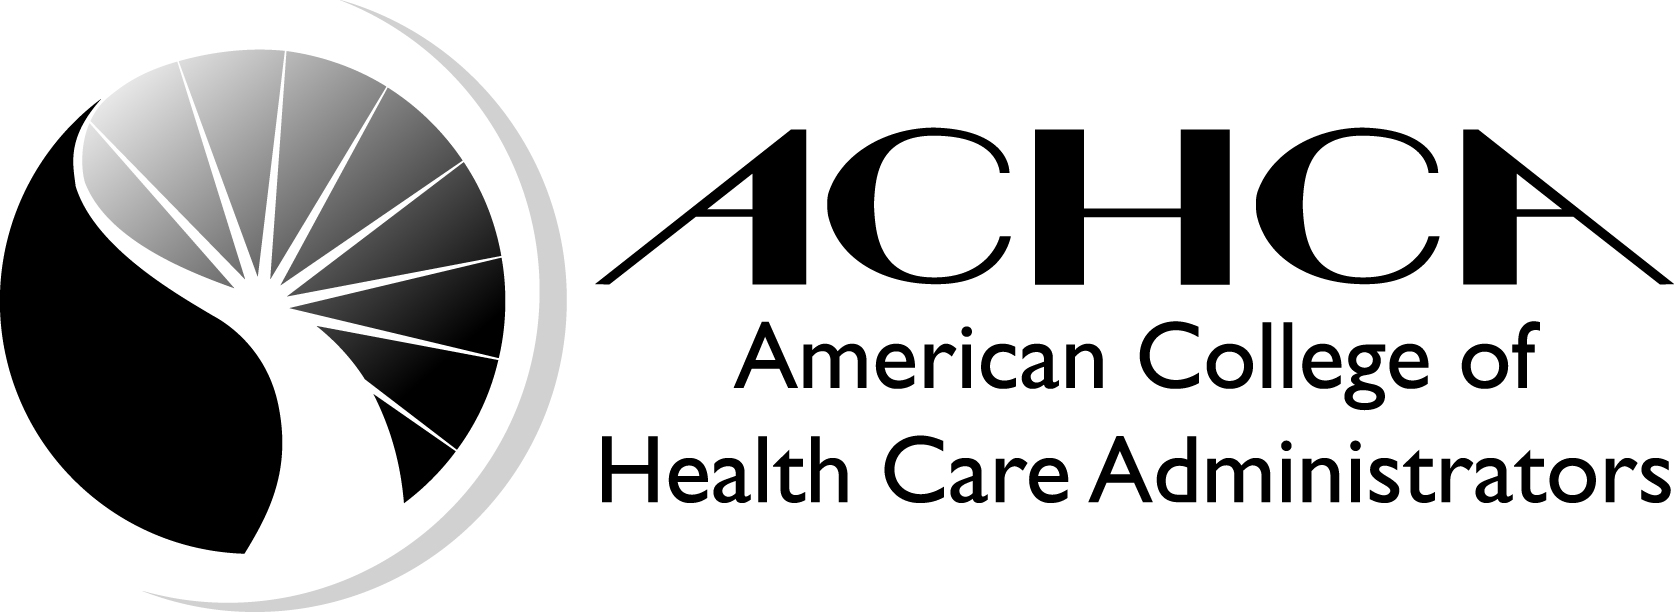 American College Of Healthcare Administrators